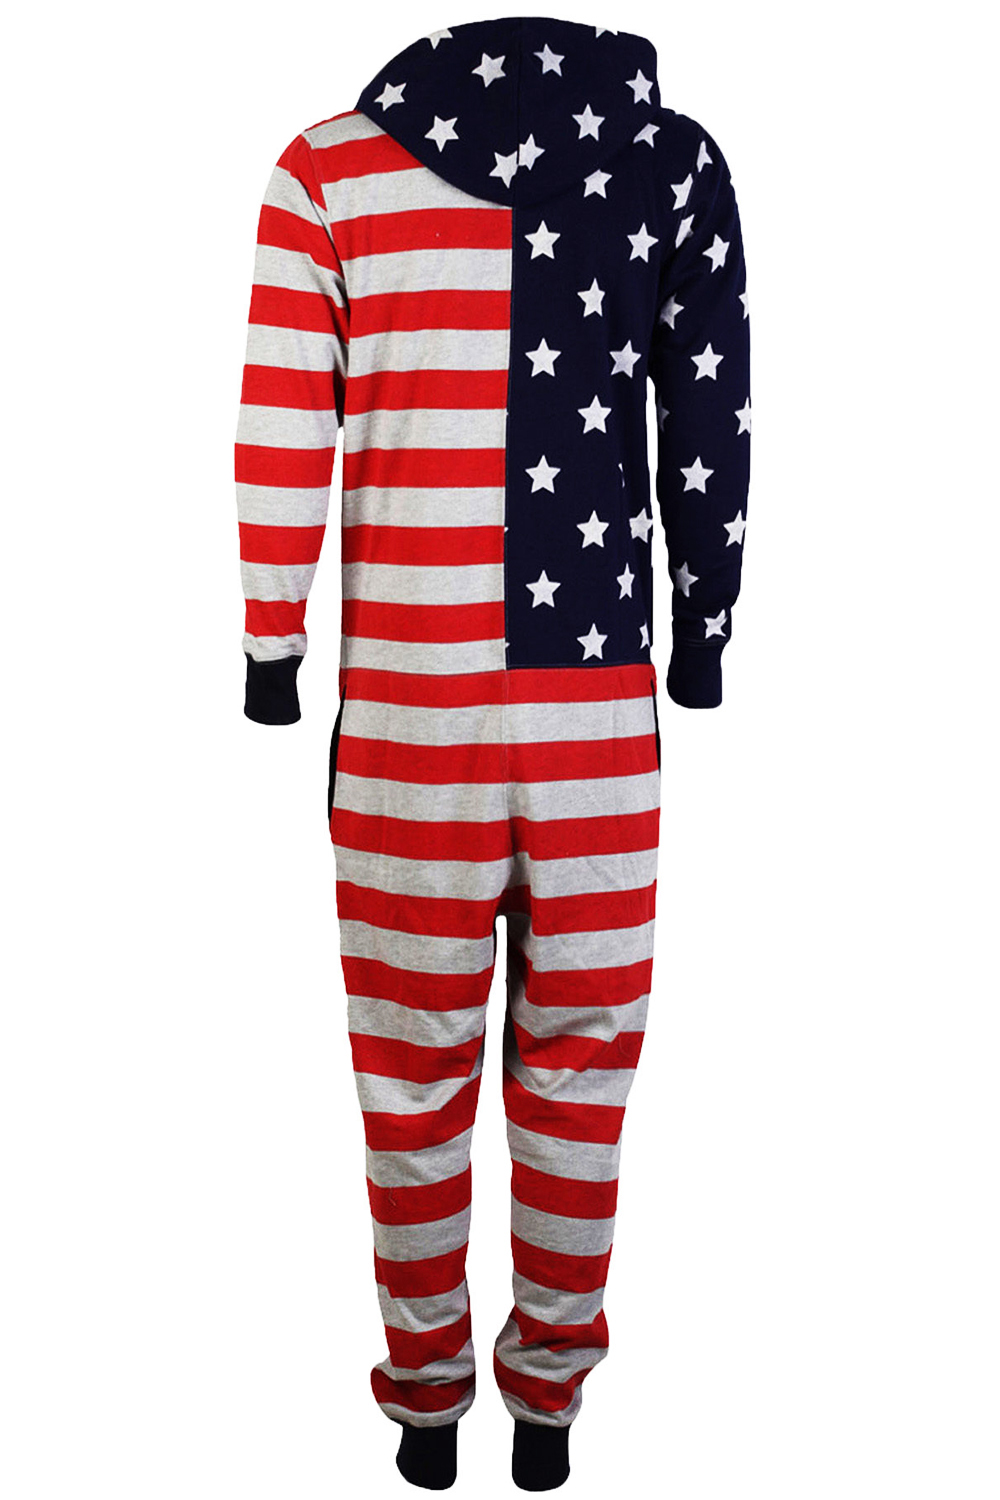 Tokyo-Laundry-Adults-All-In-One-American-USA-Flag-Print-Hooded-Lounge-Jumpsuit thumbnail 7